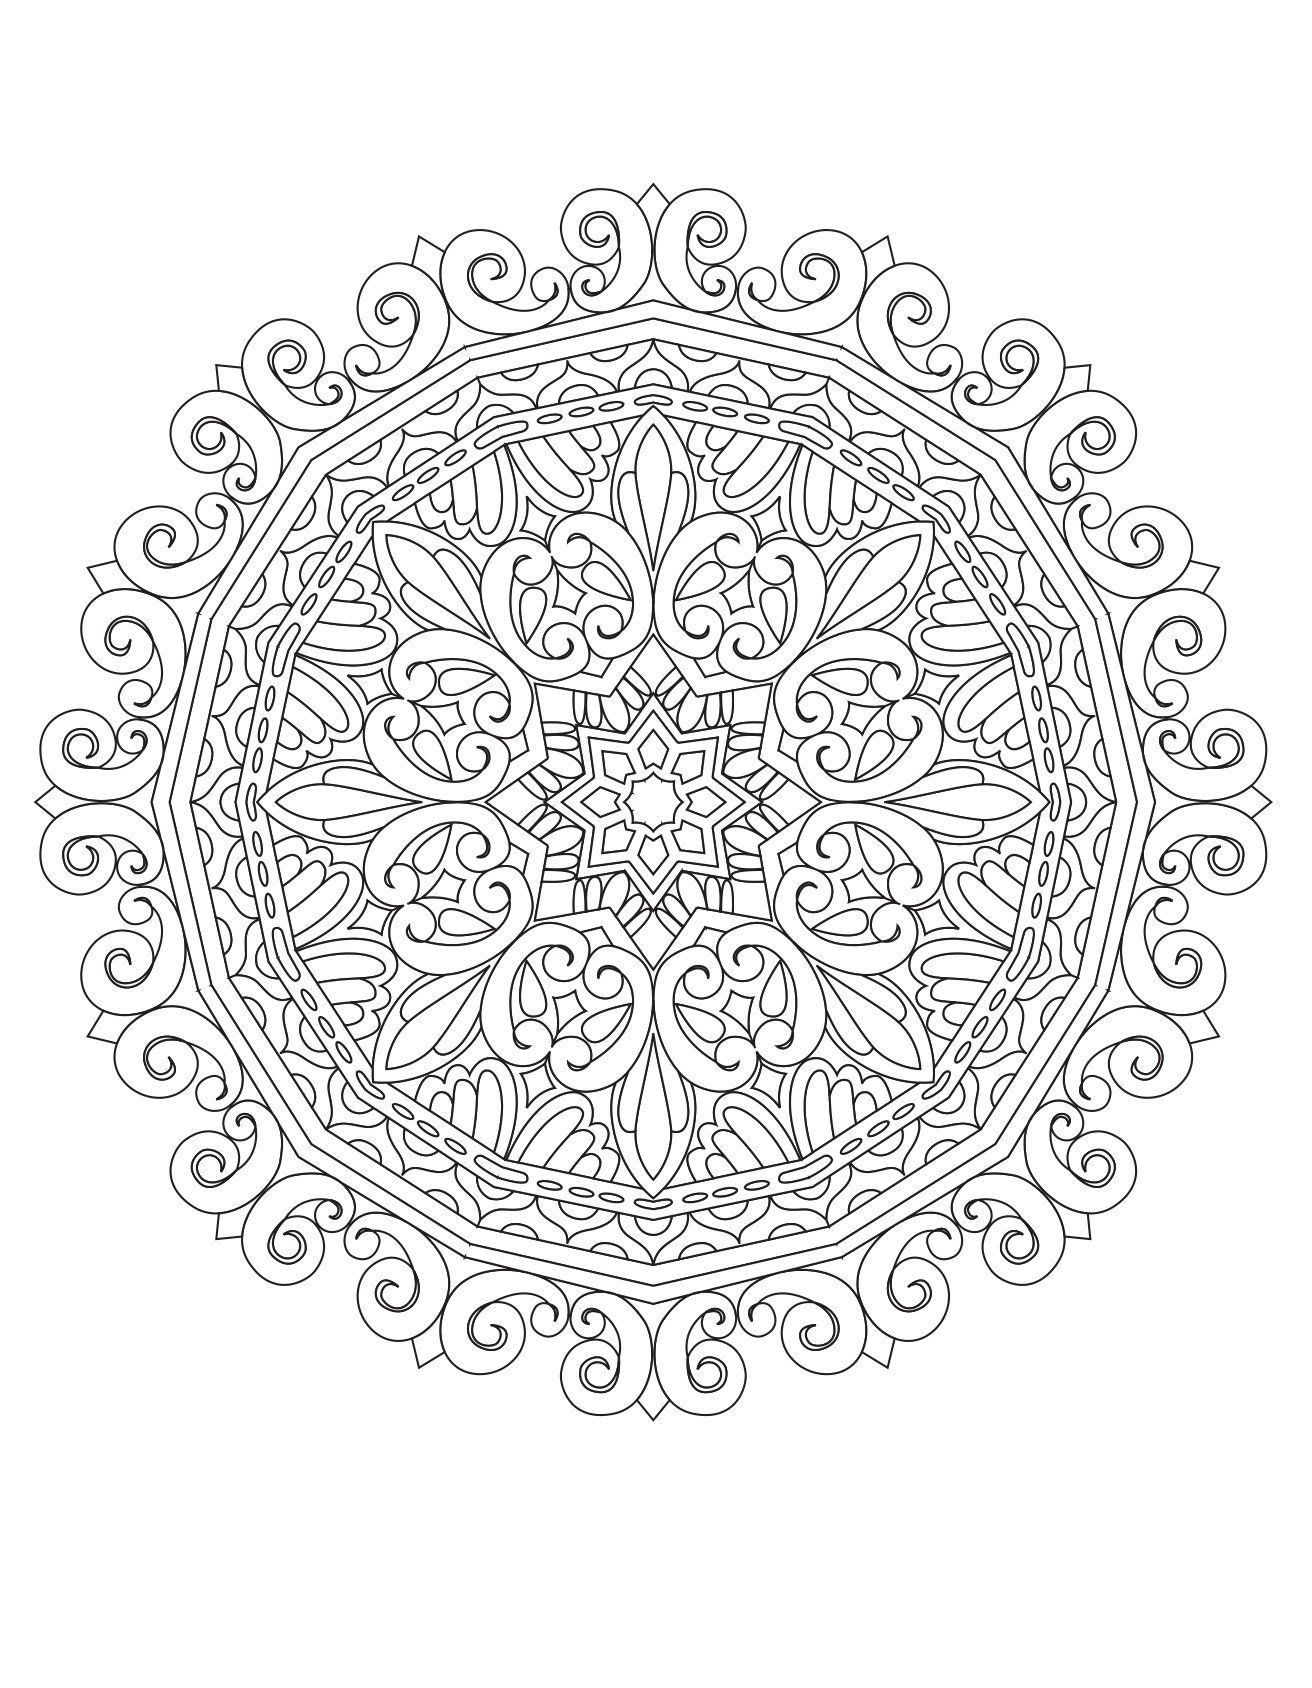 Robot Check Mandala Coloring Books Witch Coloring Pages Mandala Coloring Pages